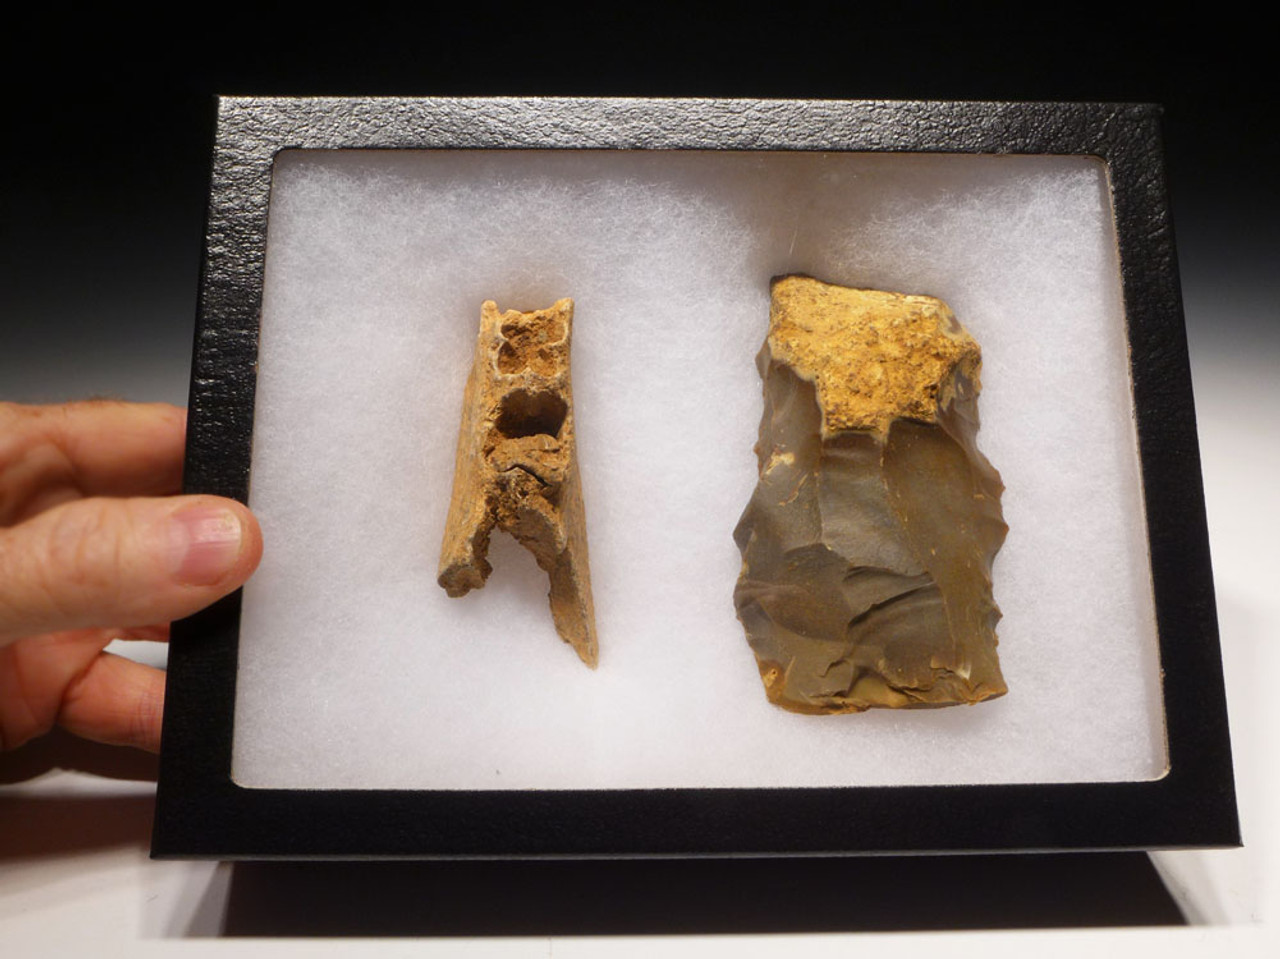 M348 - MASSIVE NEANDERTHAL MOUSTERIAN FLINT SIDE SCRAPER FOUND WITH FOSSIL BISON JAW FRAGMENT FROM A ROCK SHELTER IN FRANCE